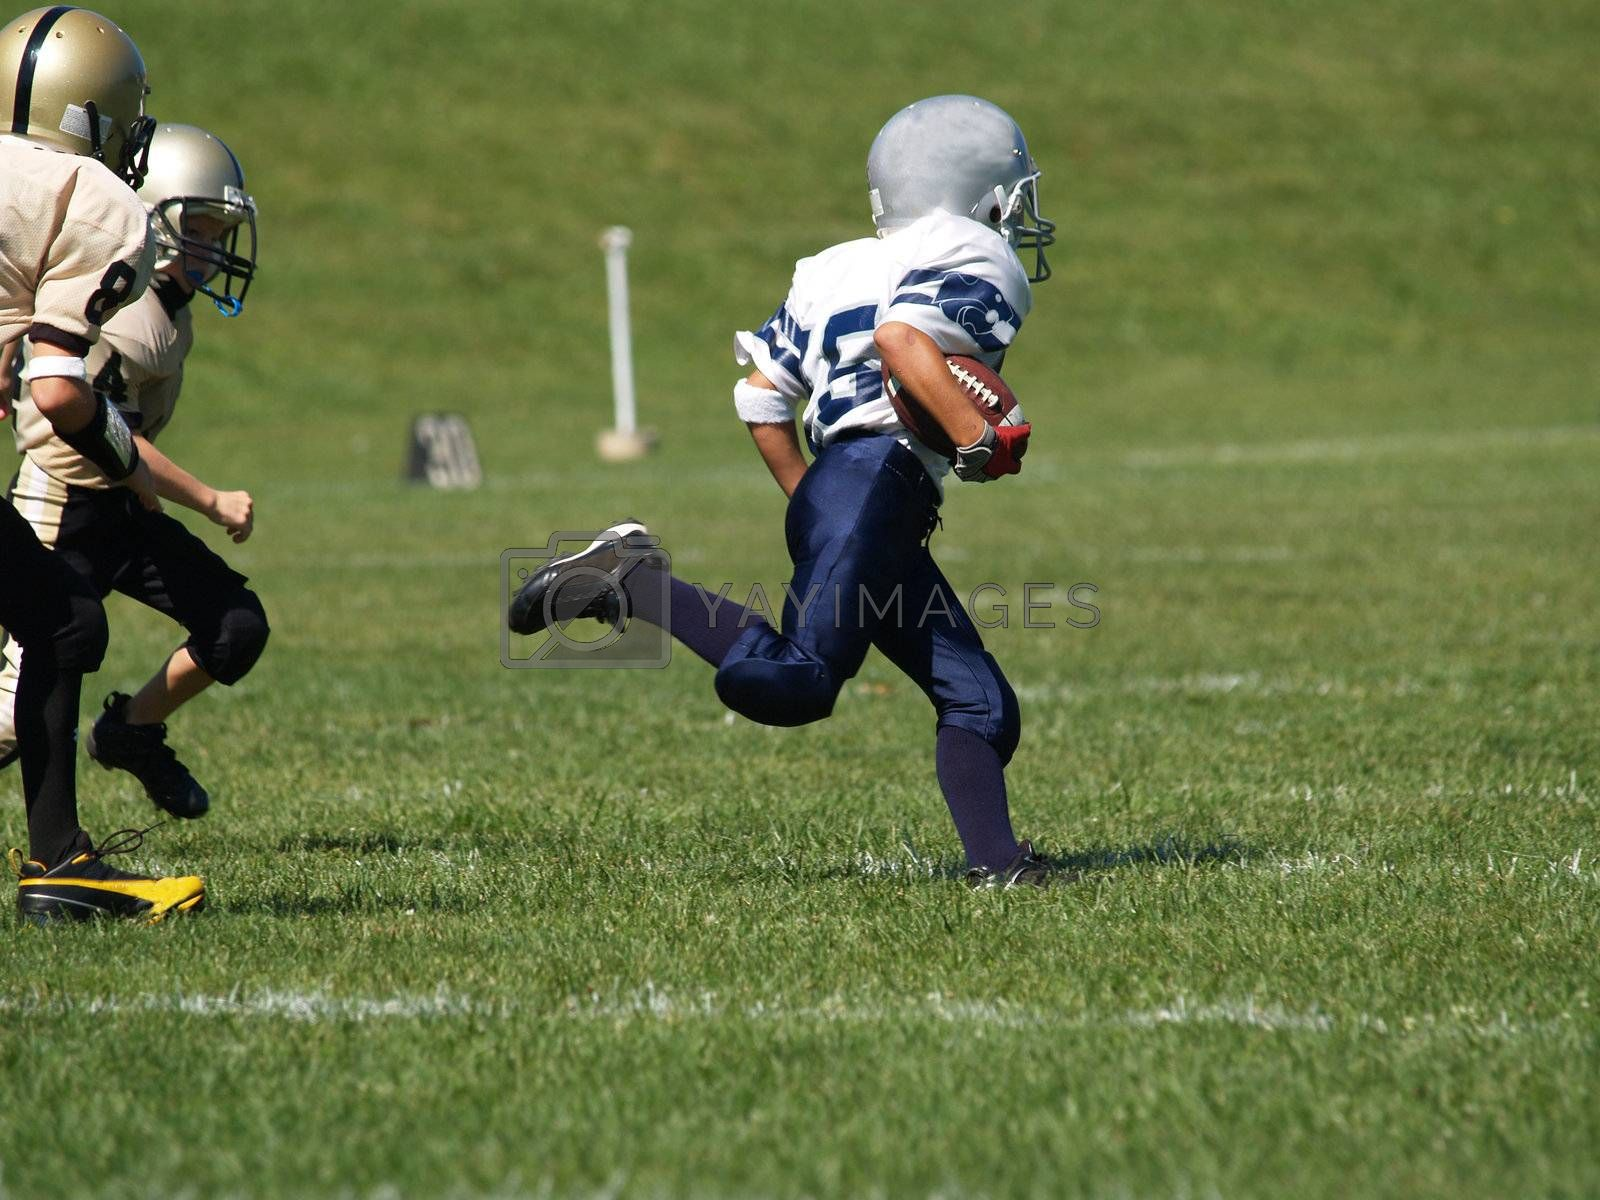 young american football player running for a touchdown